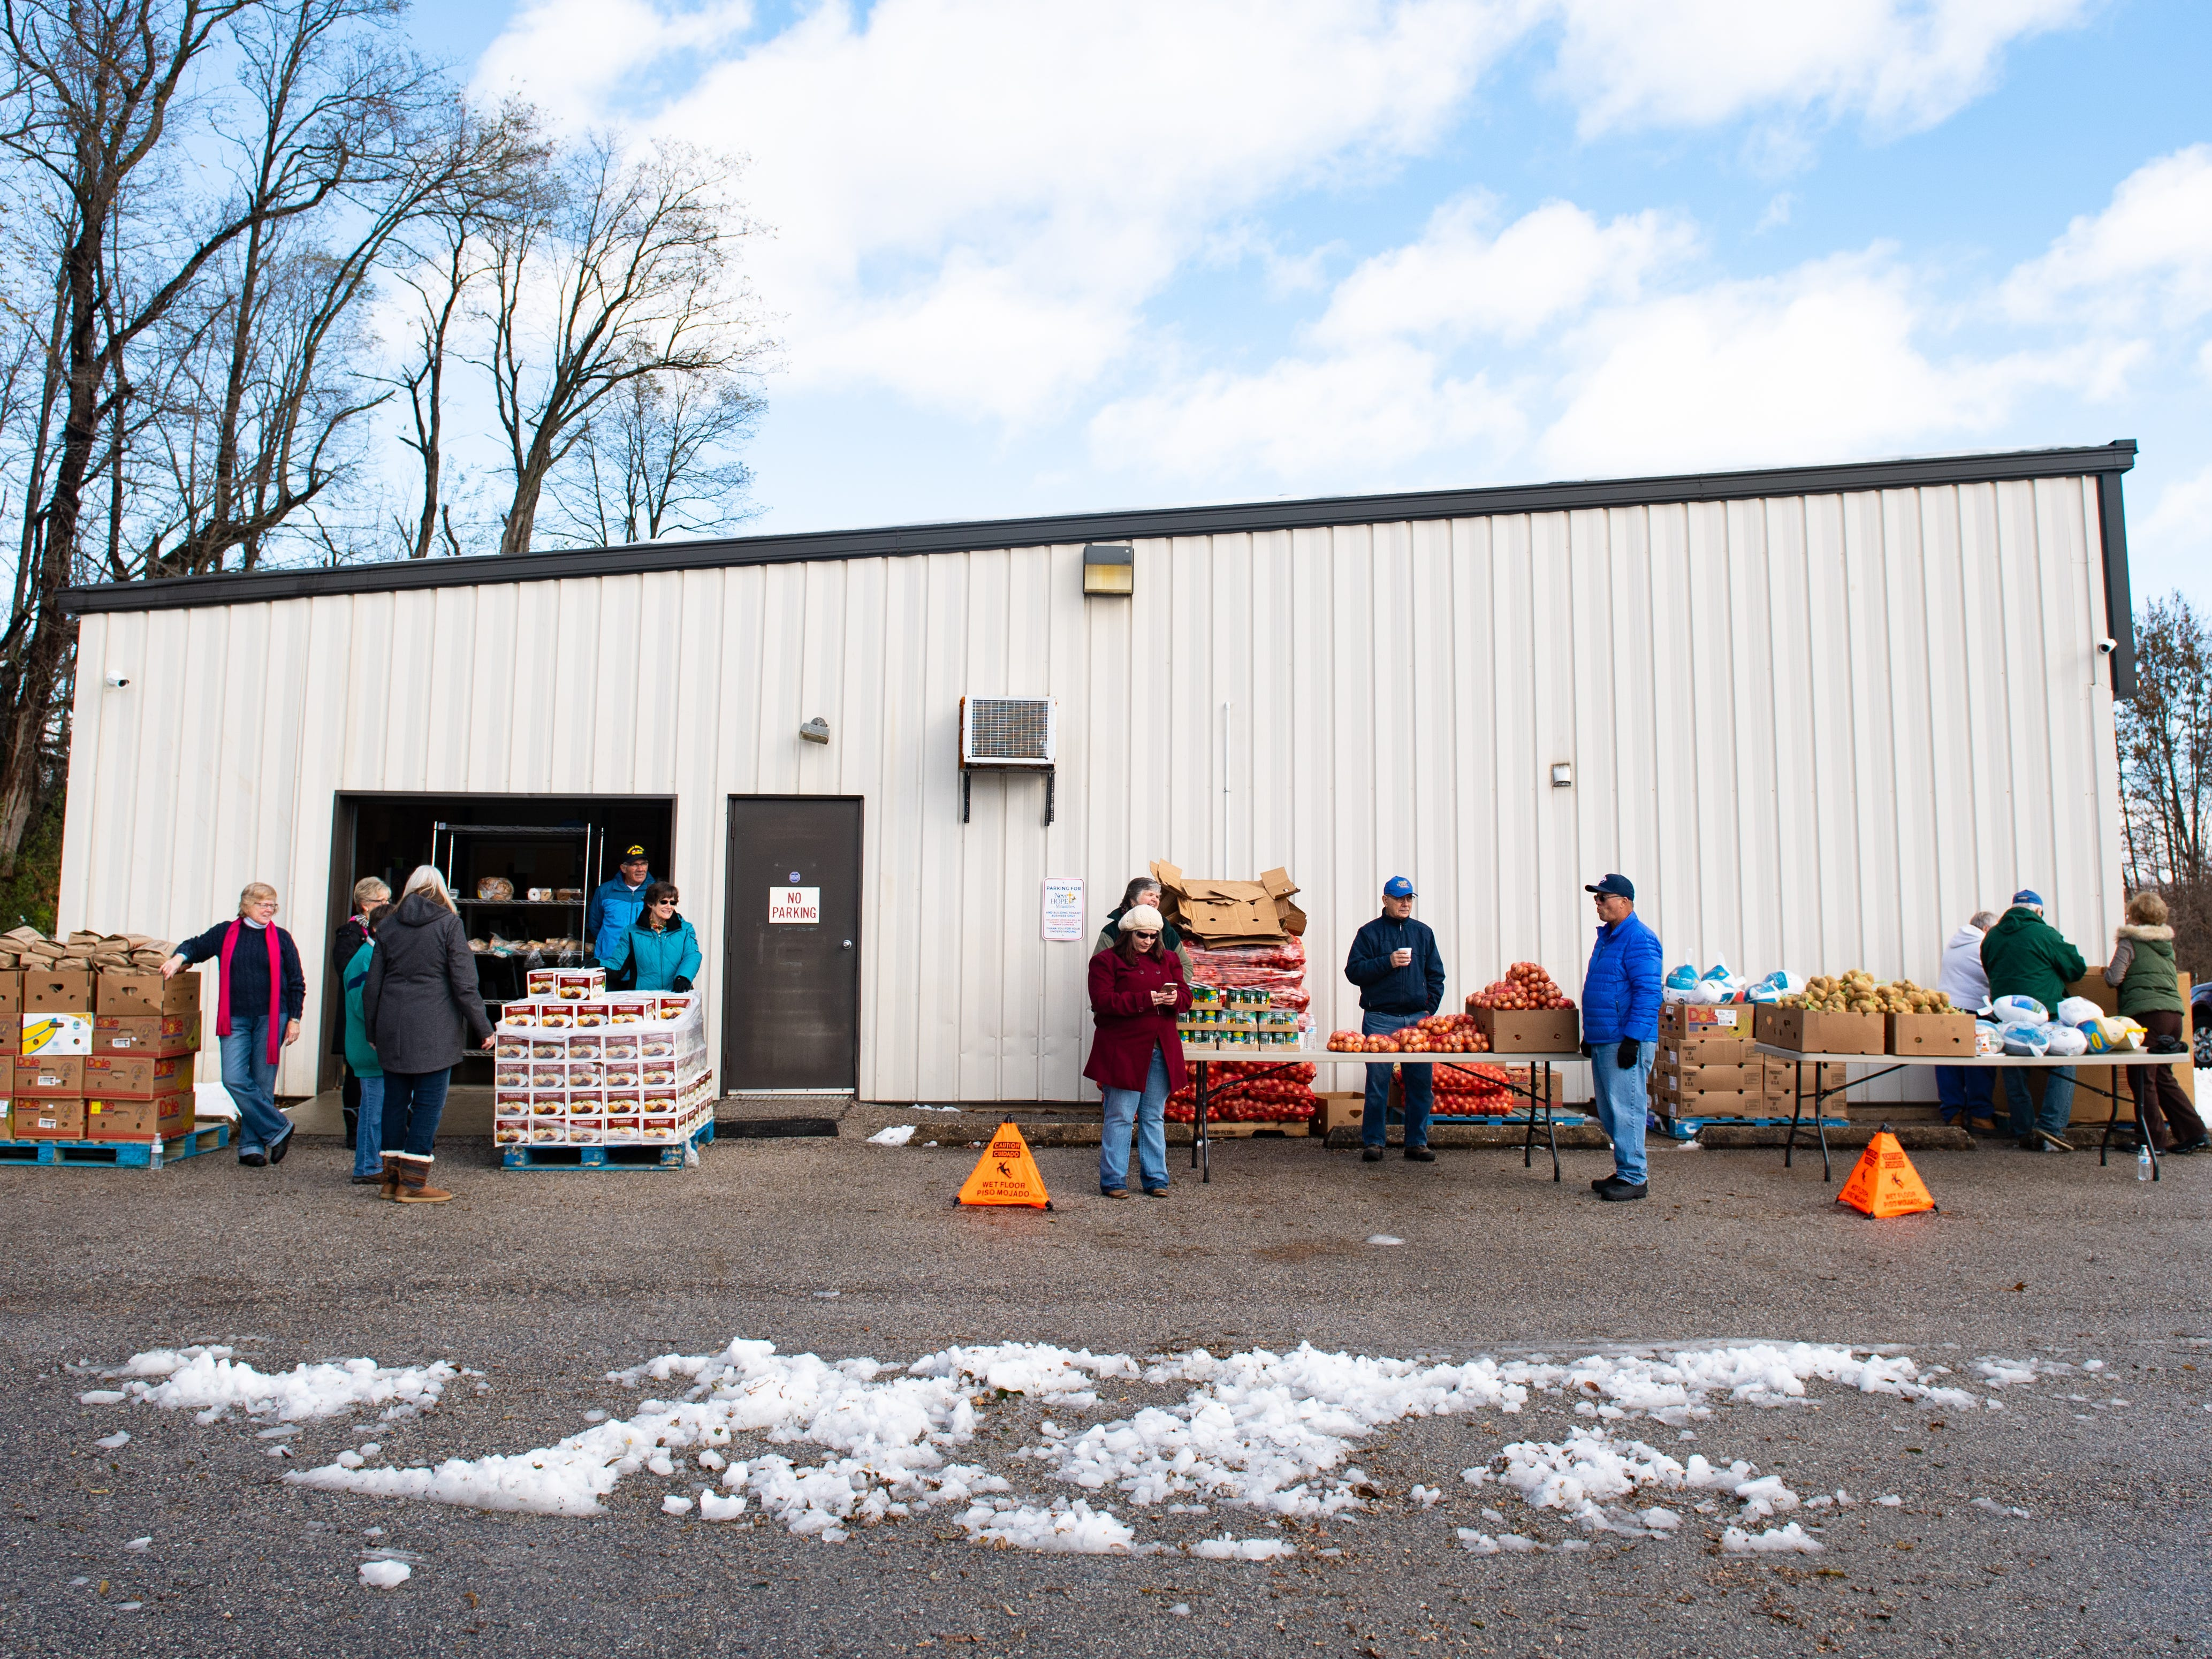 The Thanksgiving food giveaway was held at New Hope Ministries in Dover. Visitors drove around the building, and volunteers placed food in their vehicles as they passed by, like an assembly line.